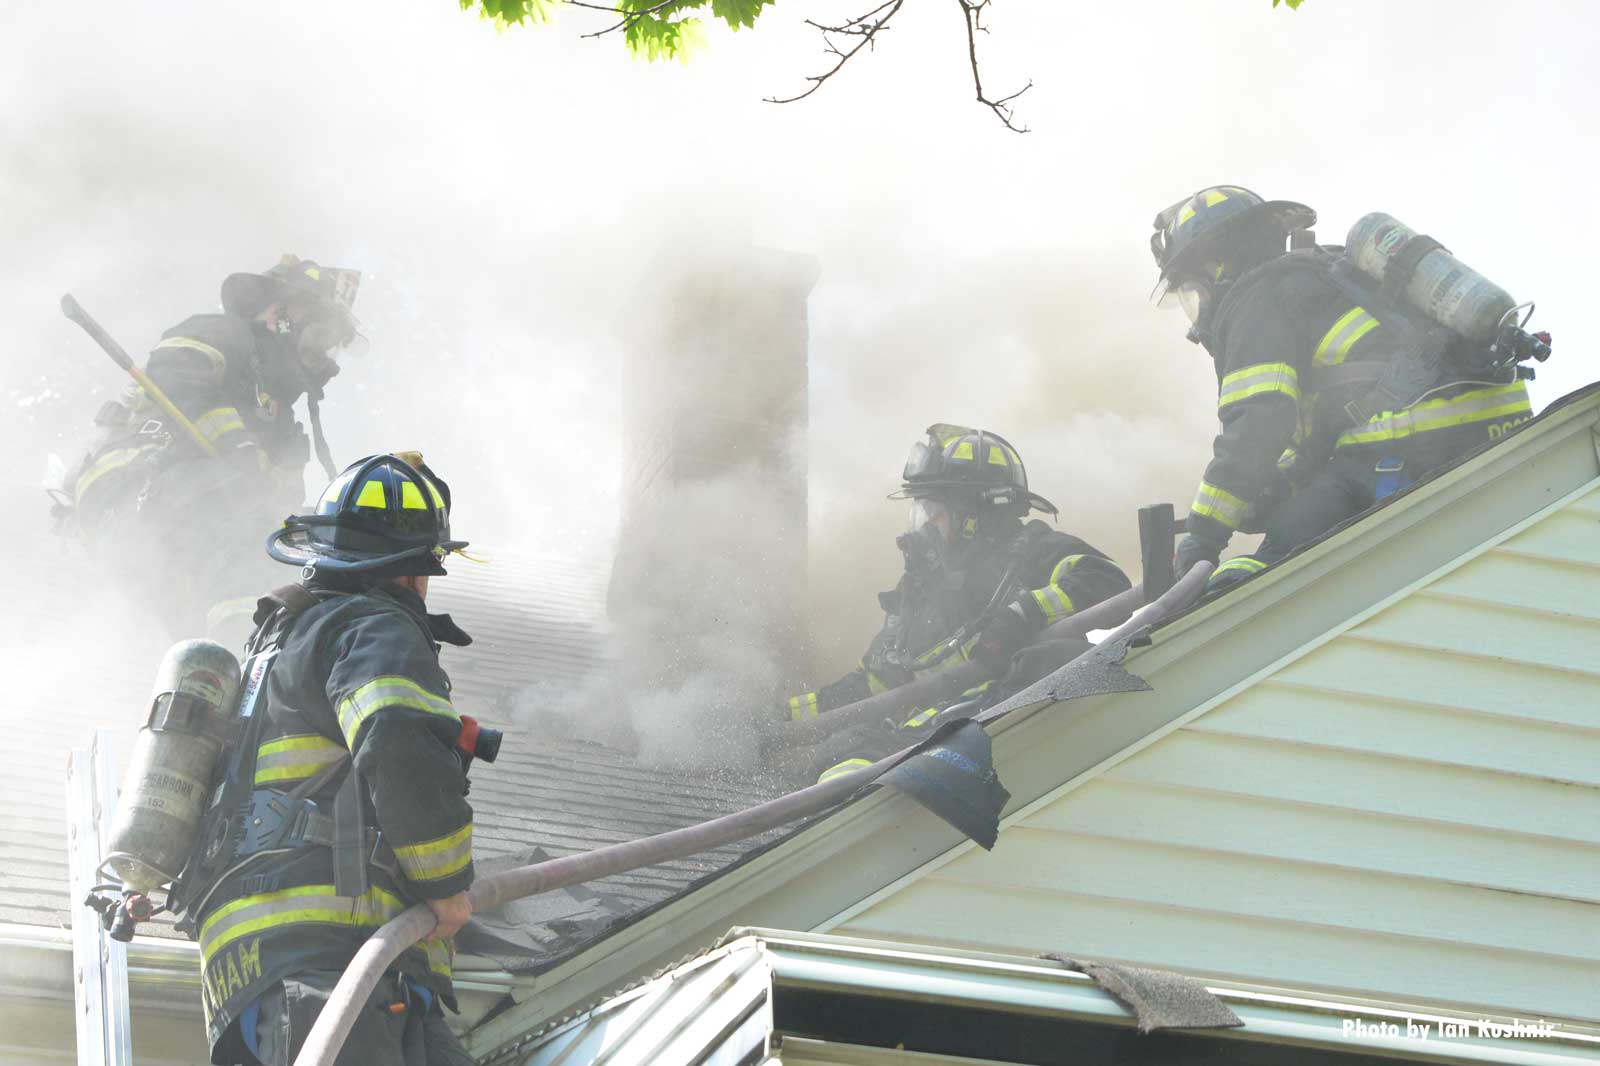 Firefighters performing vertical ventilation